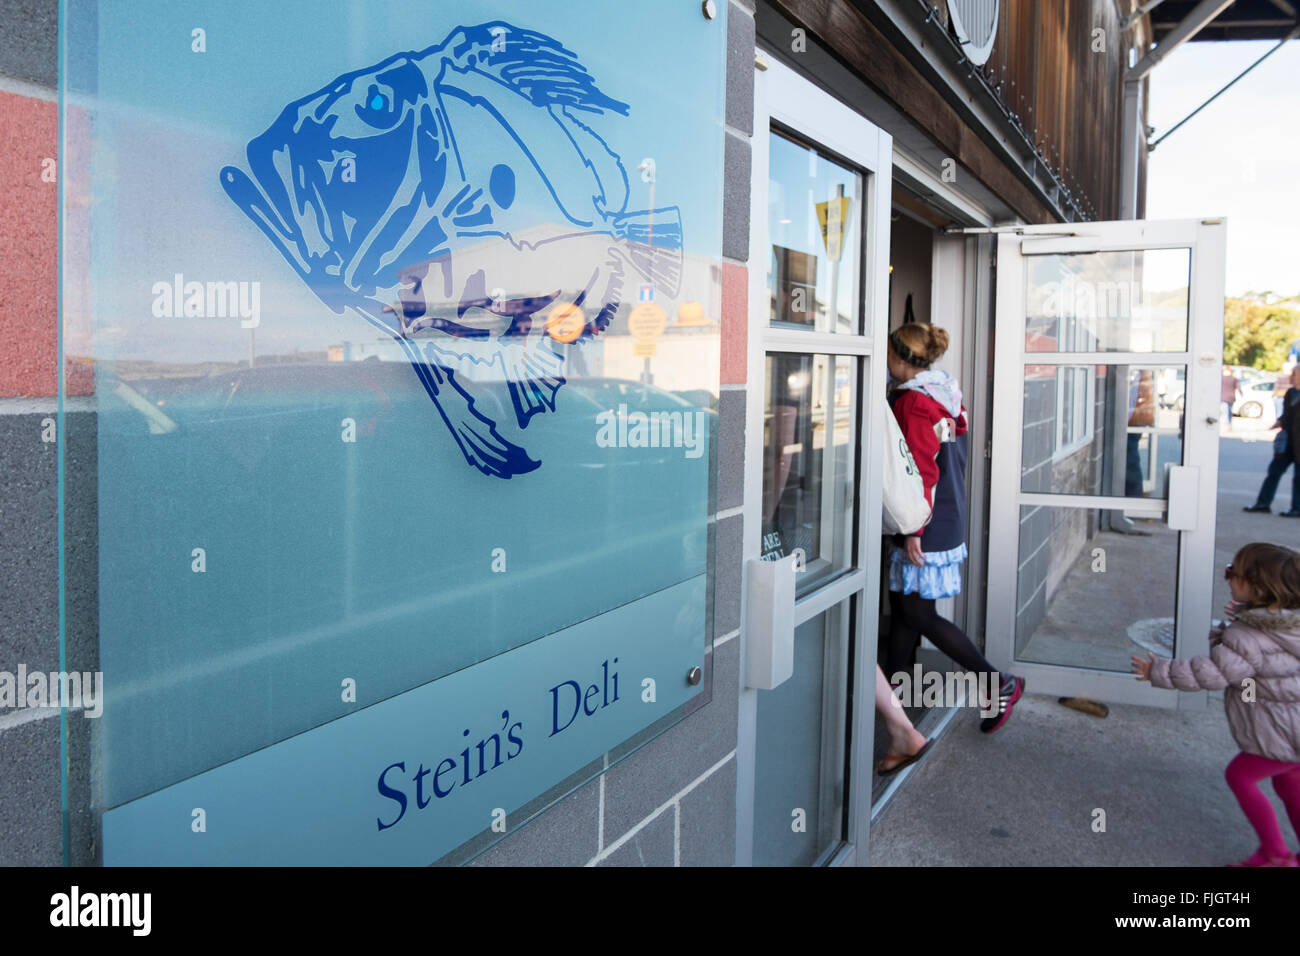 Rick Stein 39 S Deli In Padstow Cornwall Uk Stock Photo Royalty Free Image 97485825 Alamy